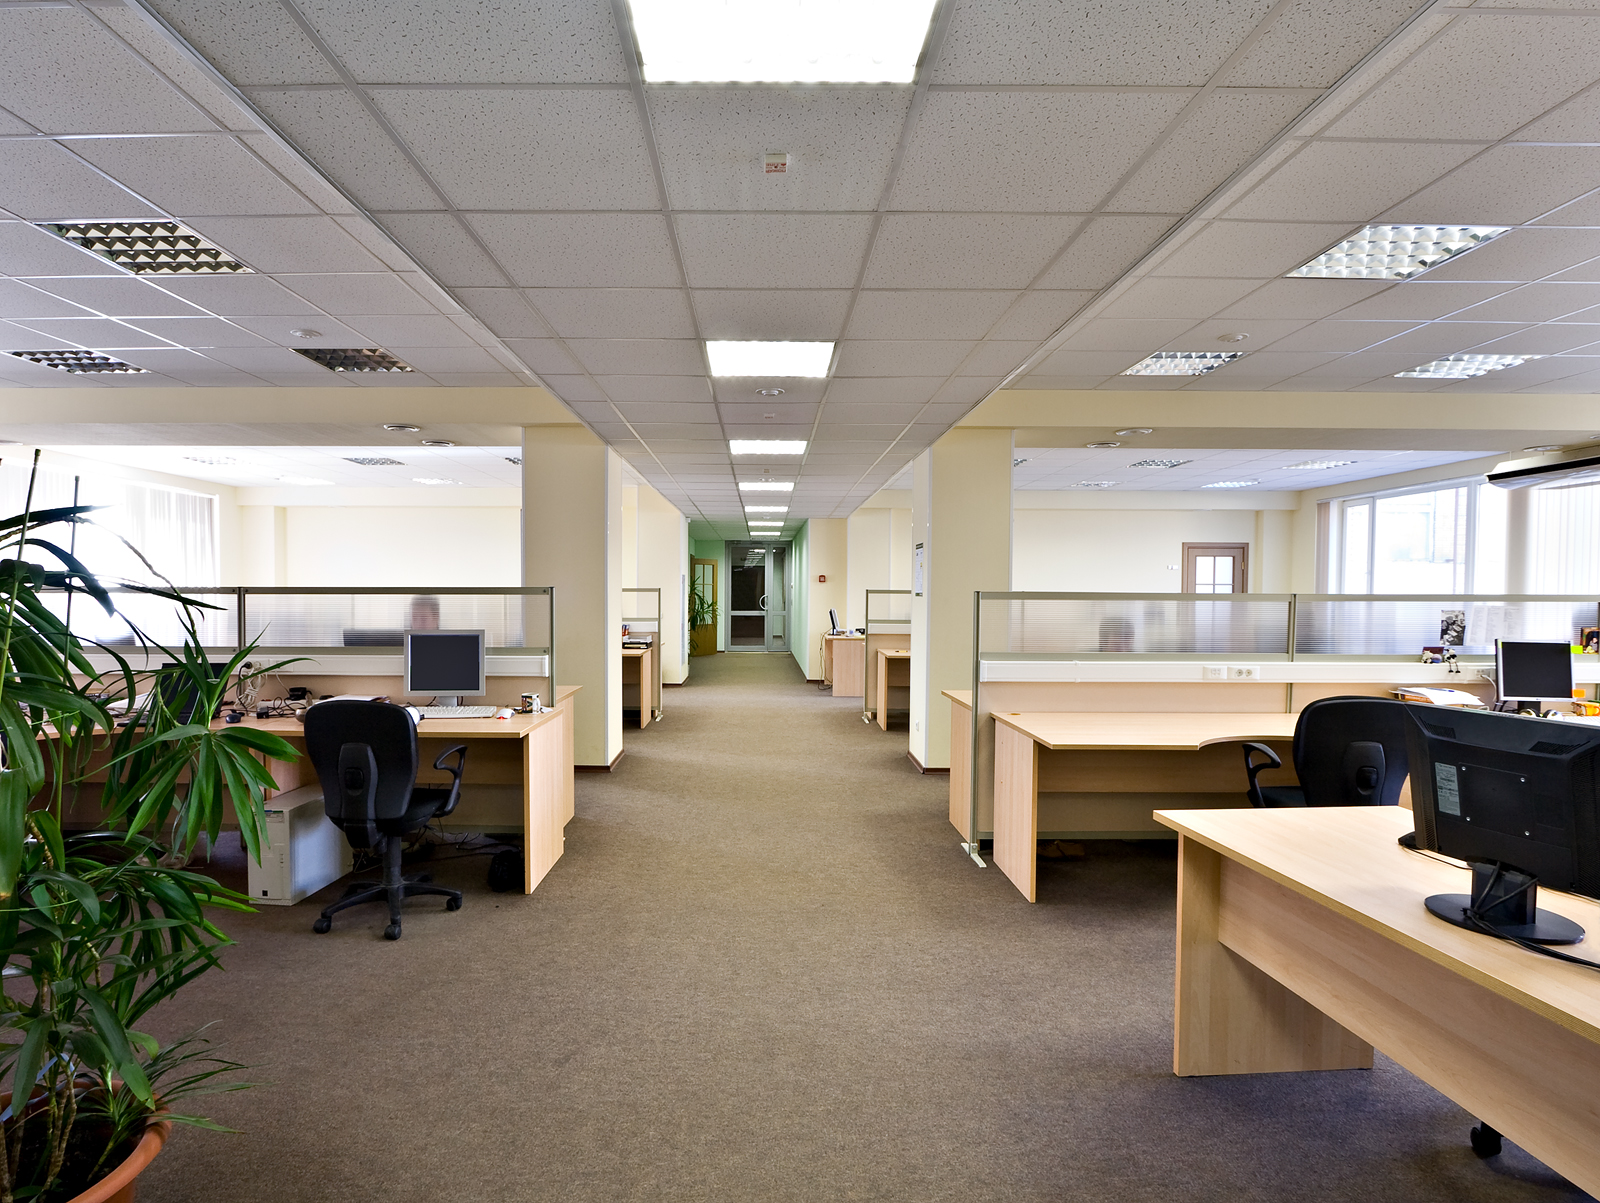 Fire safety in offices